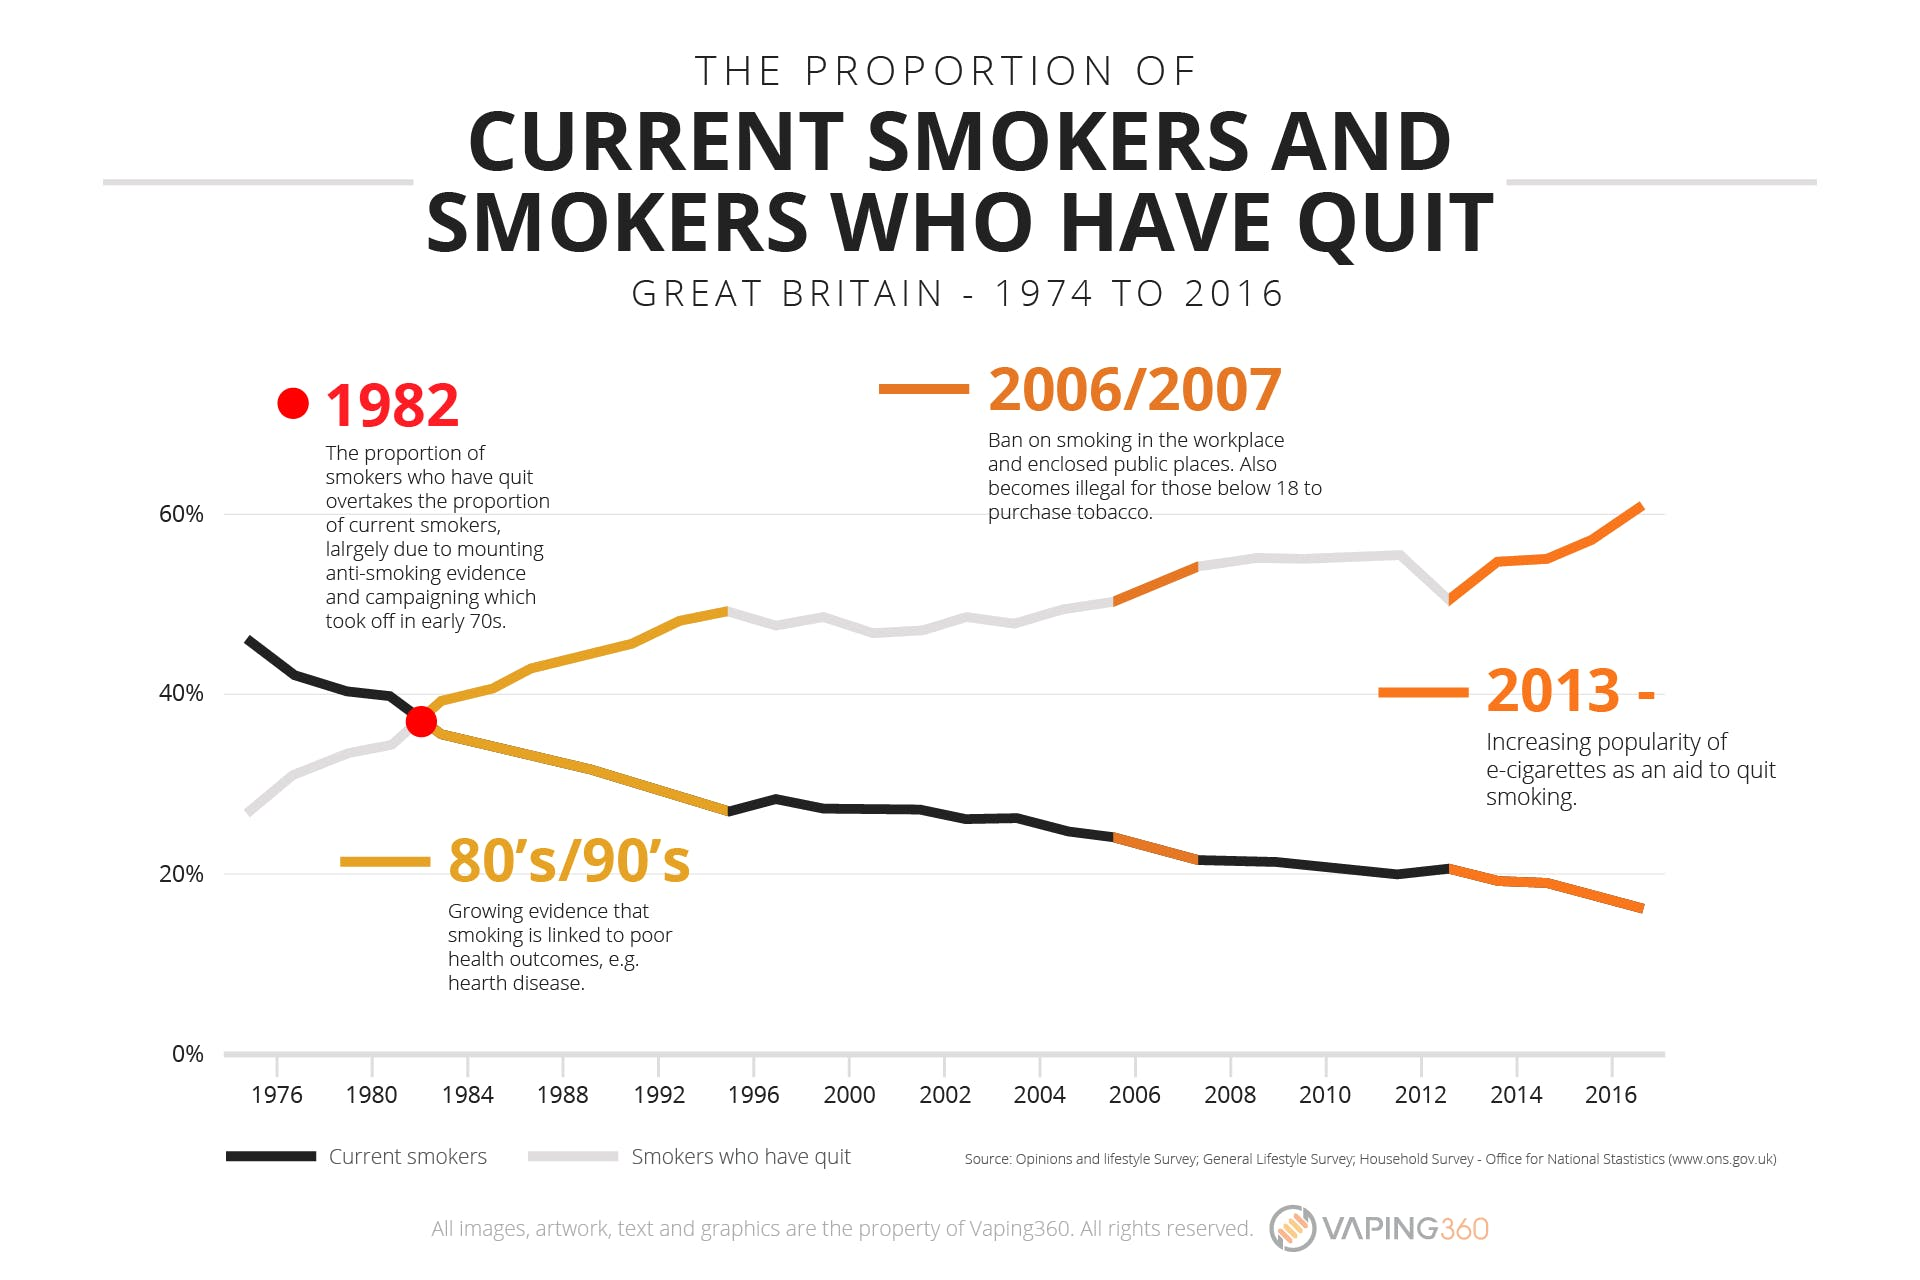 Proportion of currents smokers vs smokers who have quit-Infographic